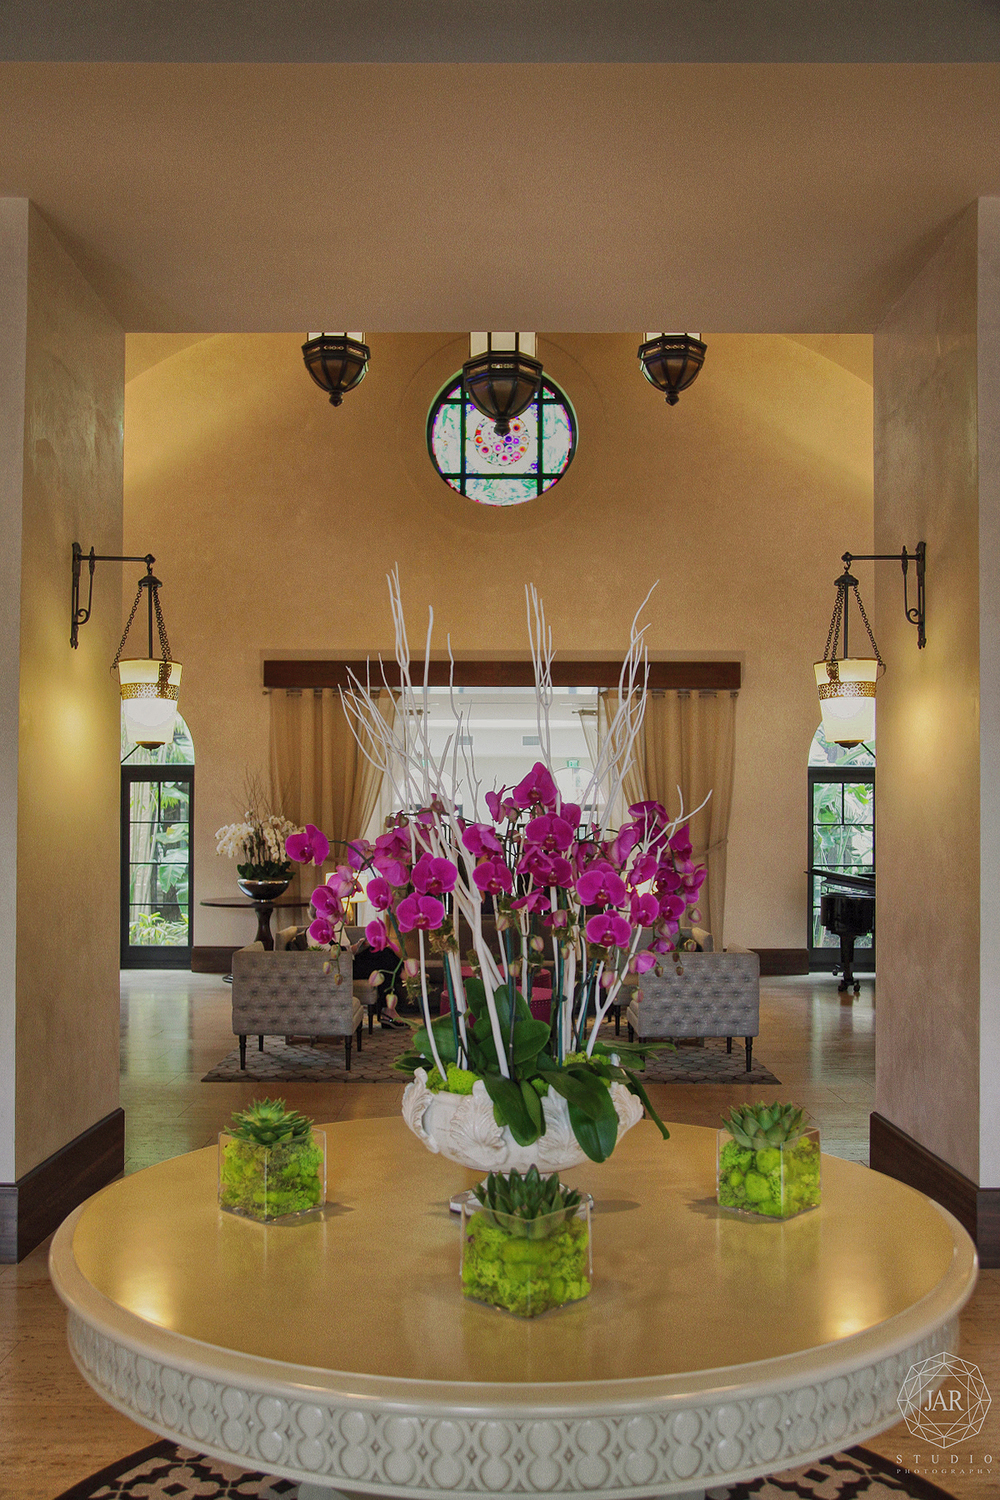 02-alfond-inn-wedding-events-decorating-flowers-jarstudio.JPG